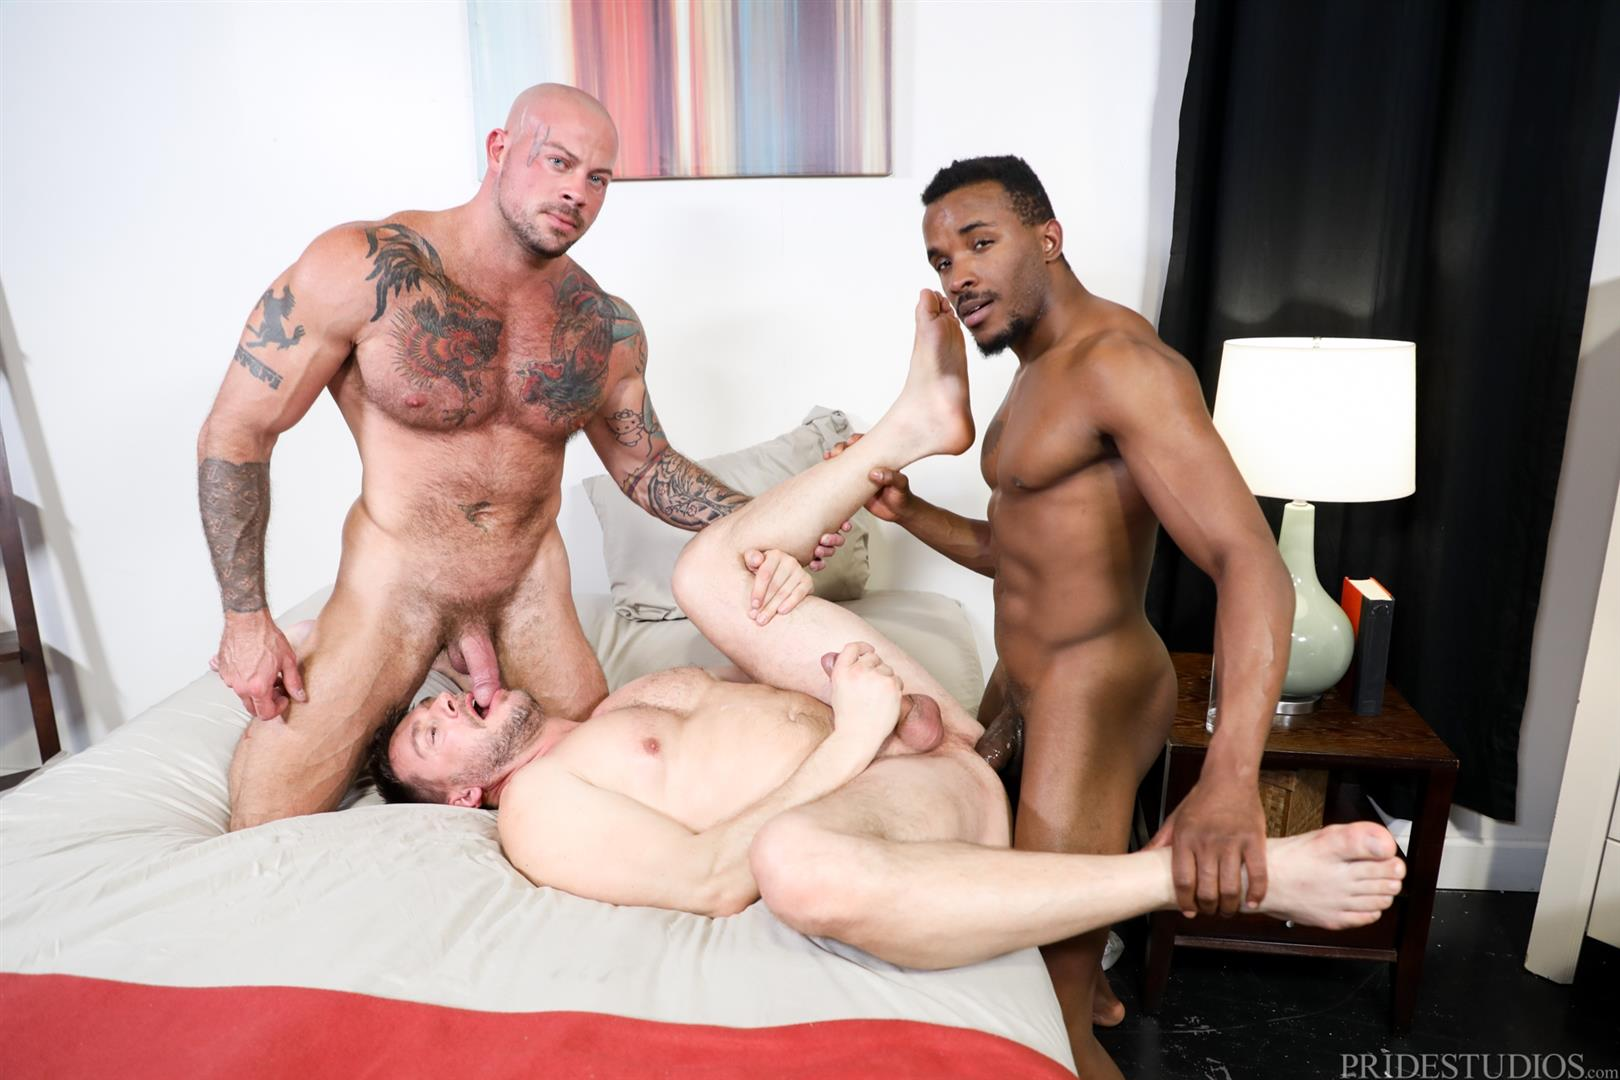 Extra-Big-Dicks-Sean-Duran-and-Hans-Berlin-and-Pheonix-Fellington-Interracial-Bareback-15 Muscle Daddies Sean Duran and Hans Berlin Share Pheonix Fellington's Big Black Cock